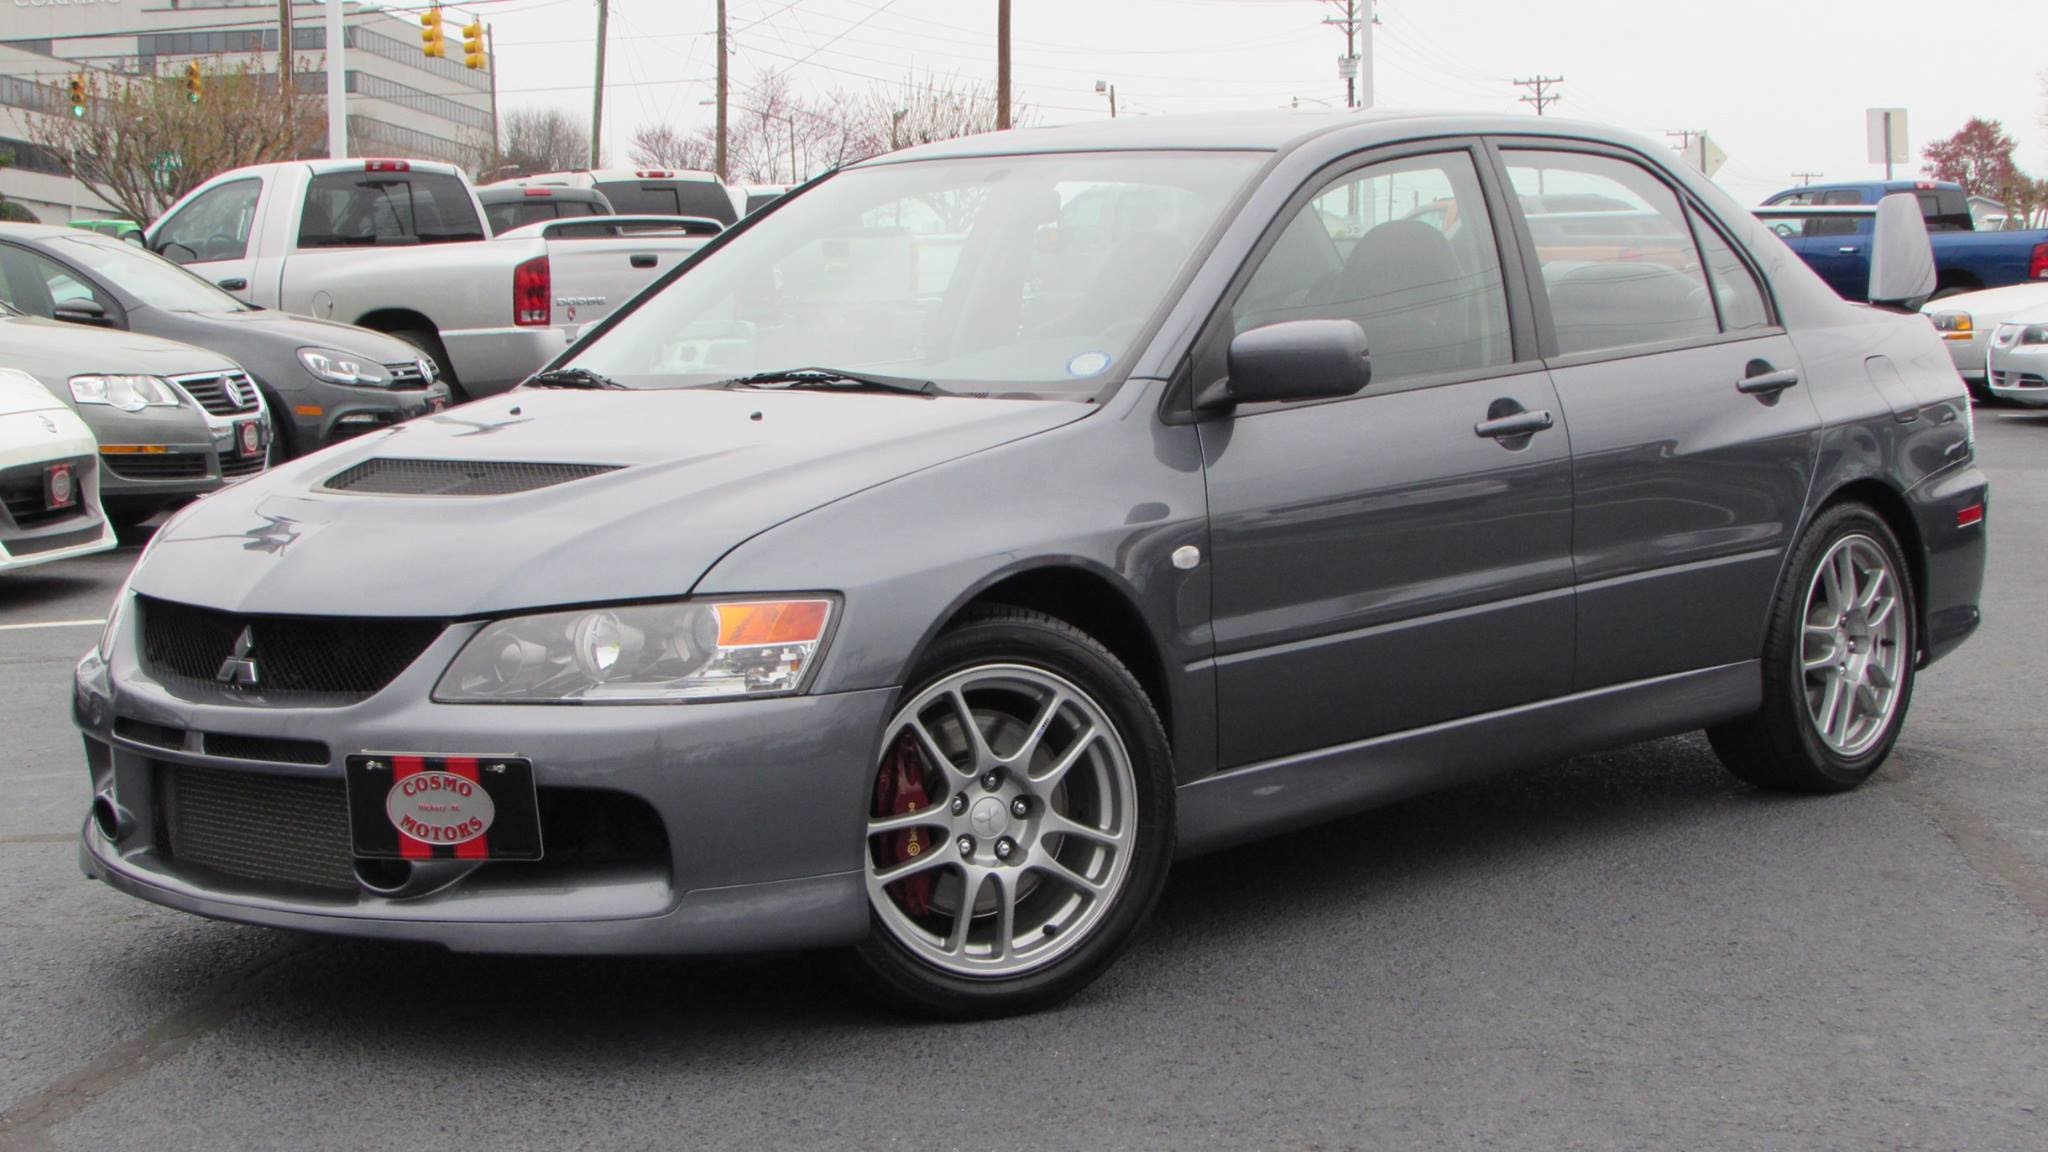 2006 mitsubishi lancer evolution photos, informations, articles